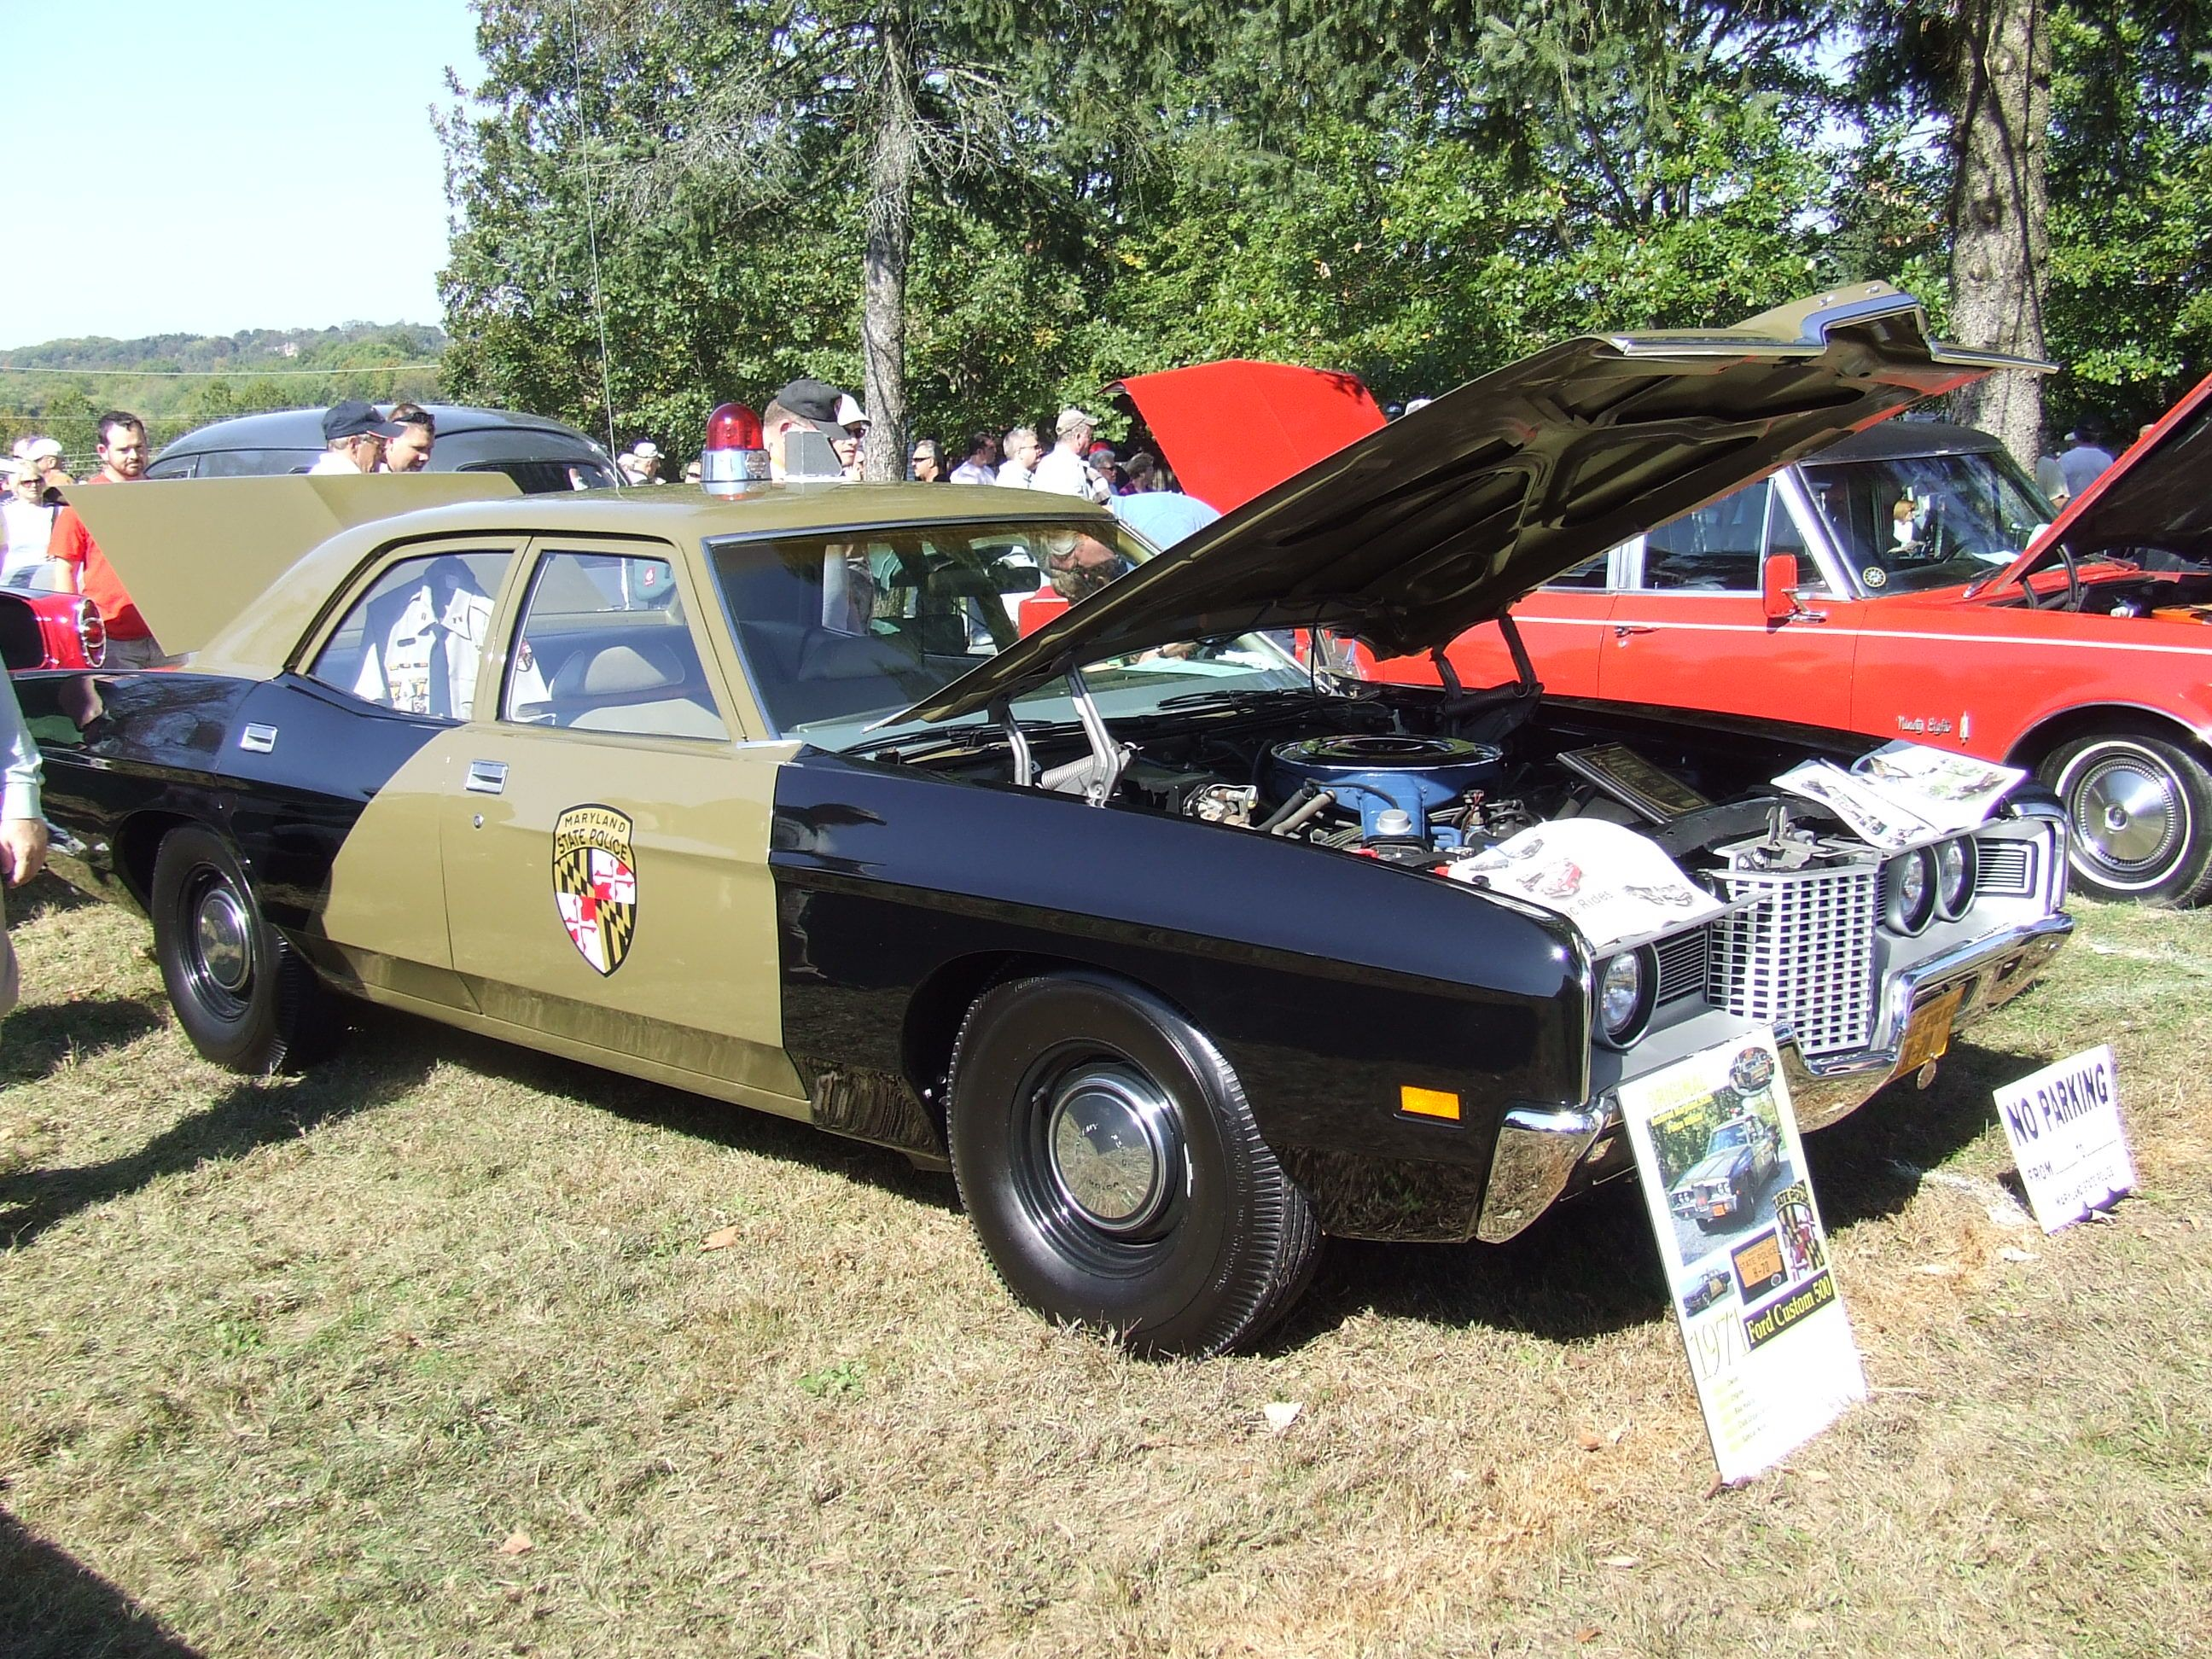 1971 Ford Custom 500 Maryland State Police Old Police Cars Police Cars Emergency Vehicles